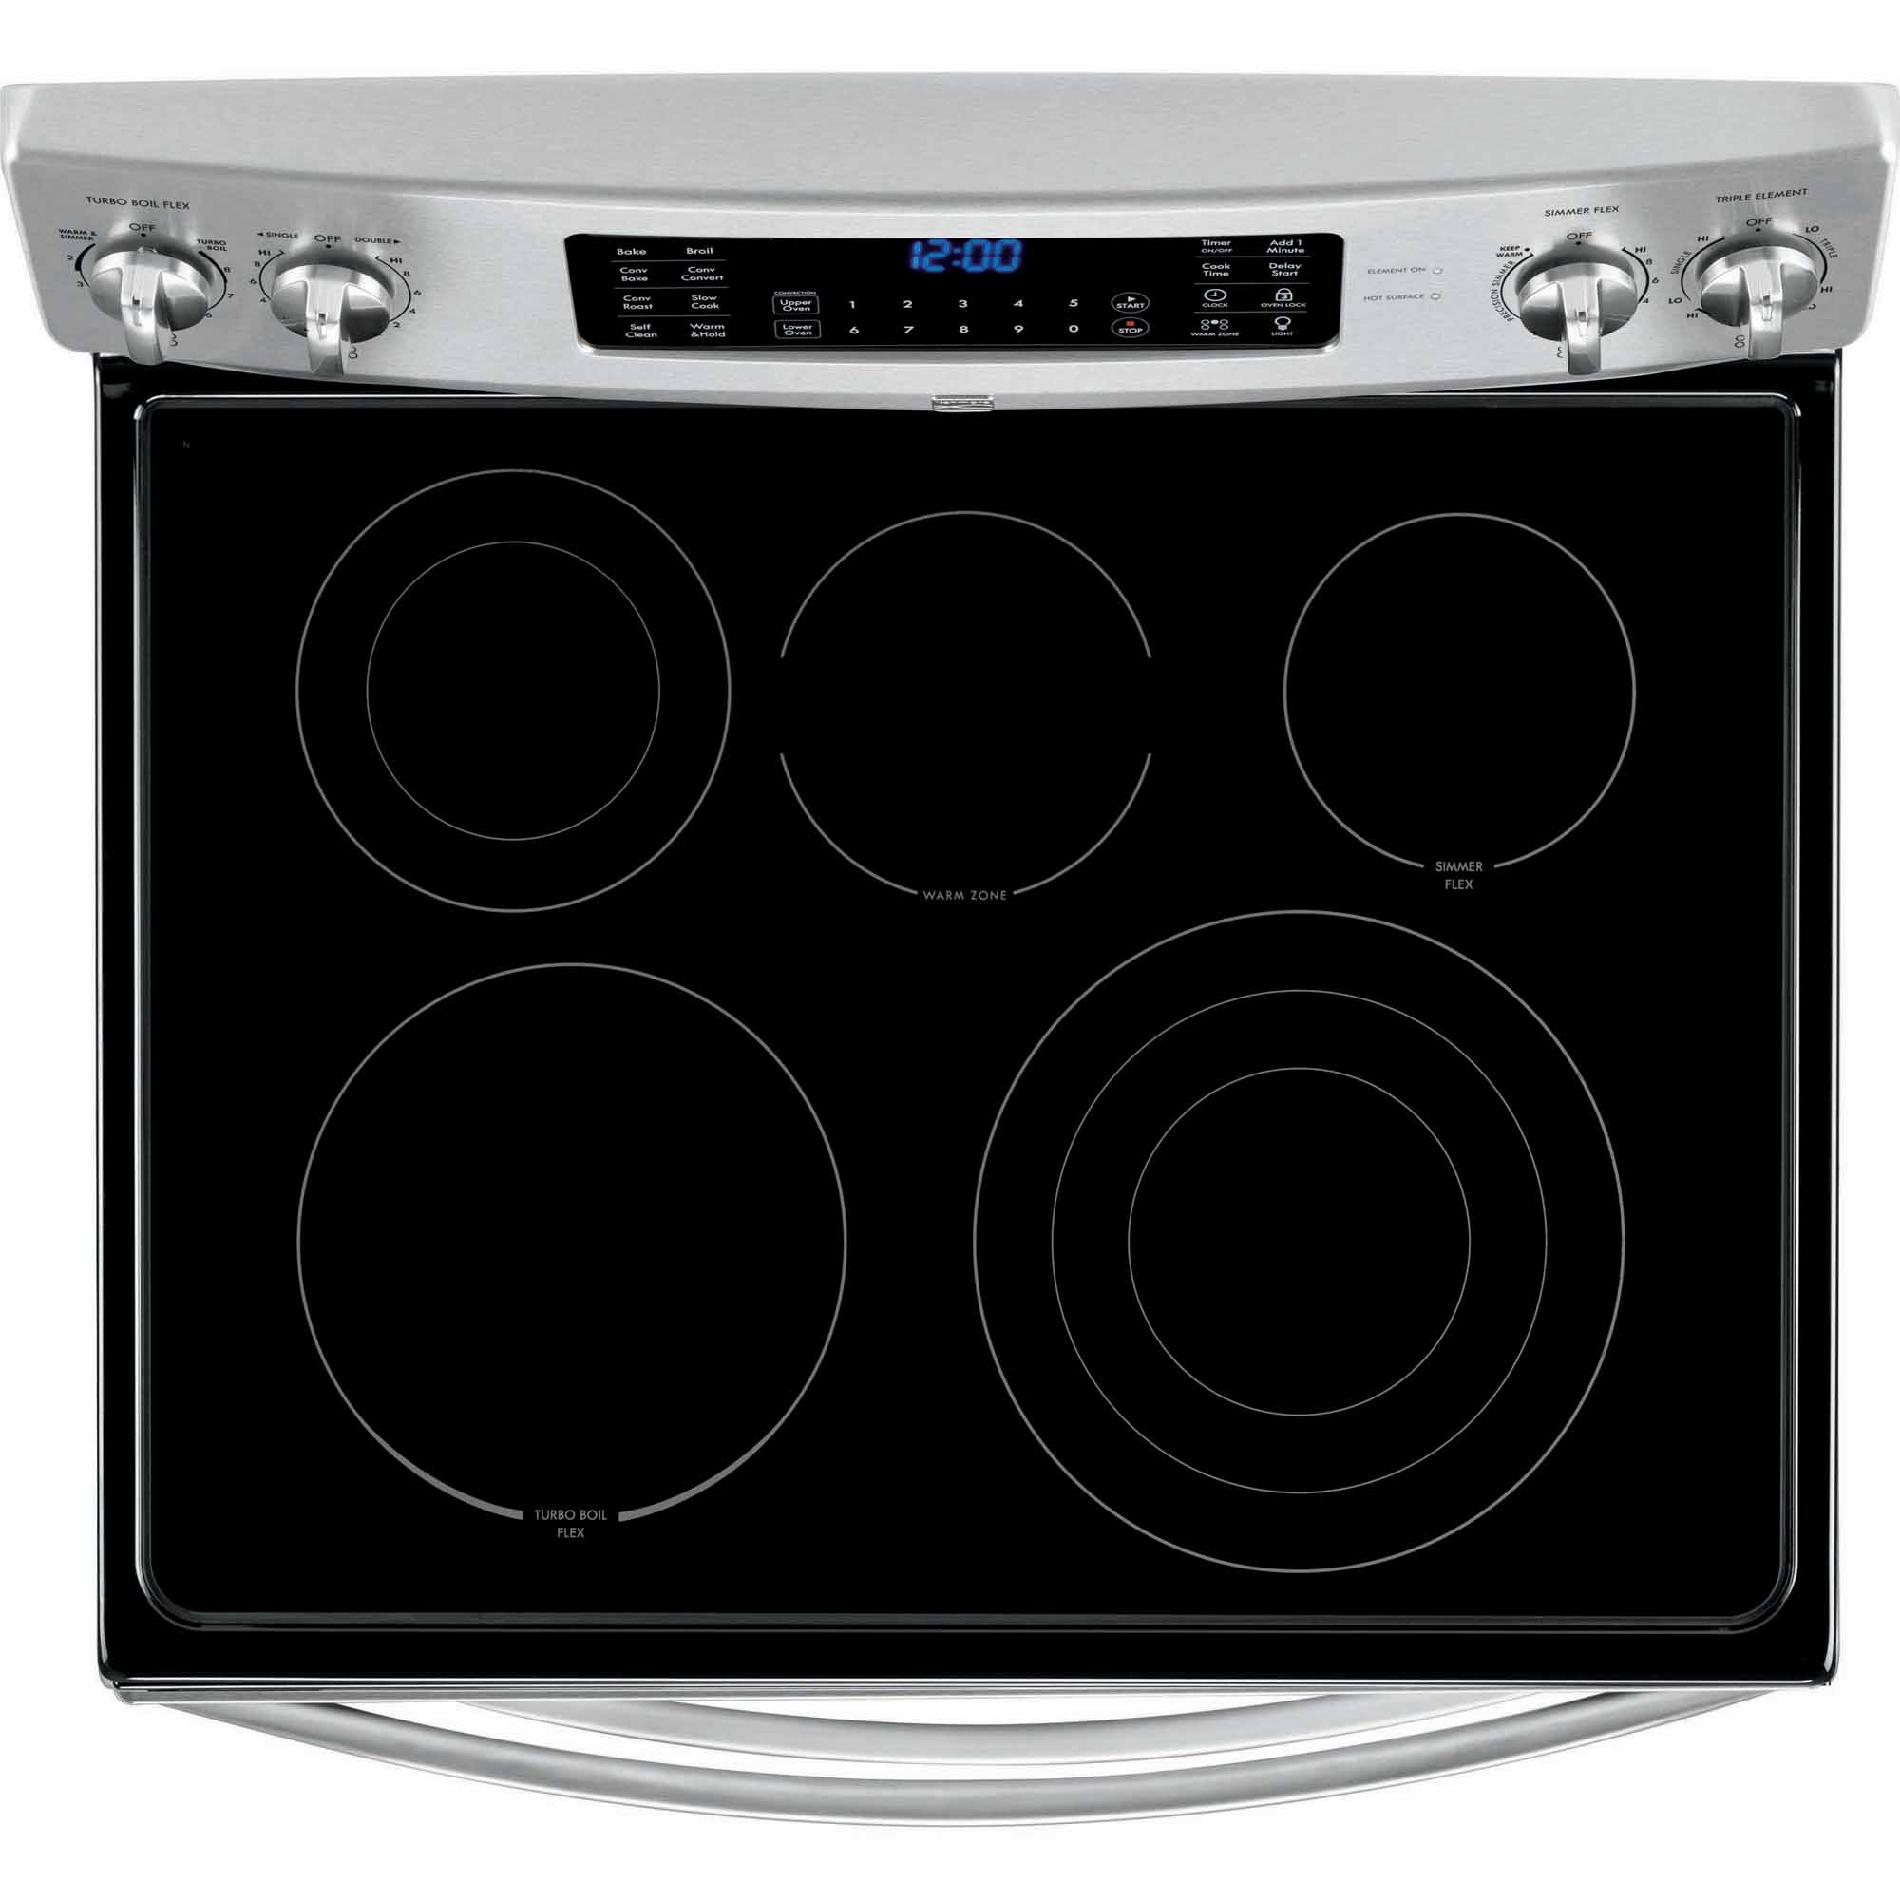 Kenmore Elite 97413 7.2 cu. ft. Double-Oven Electric Range w/ True Convection - Stainless